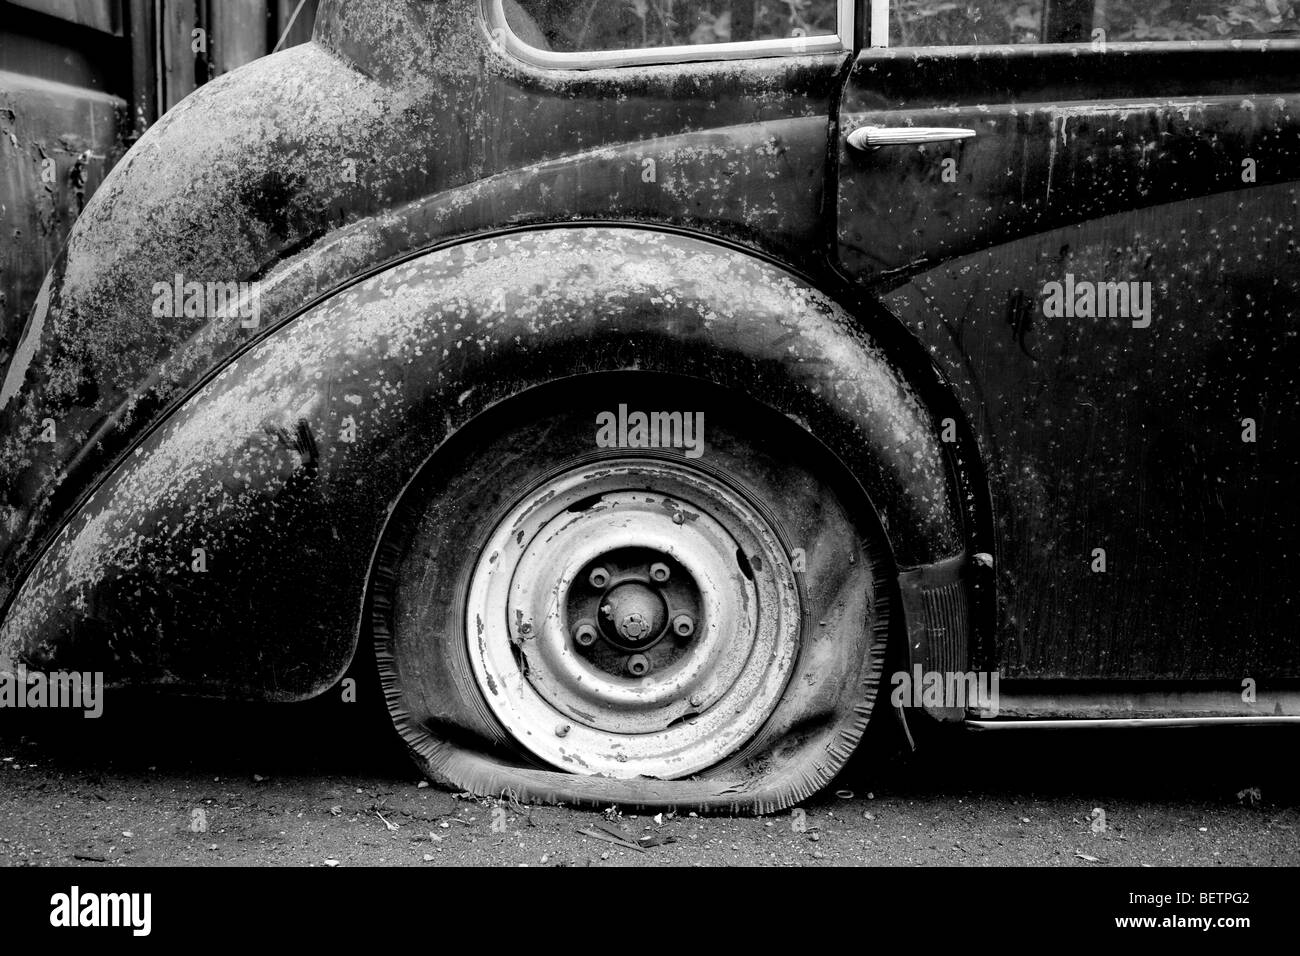 Old (1950s?) rusting car with flat tyre - Stock Image